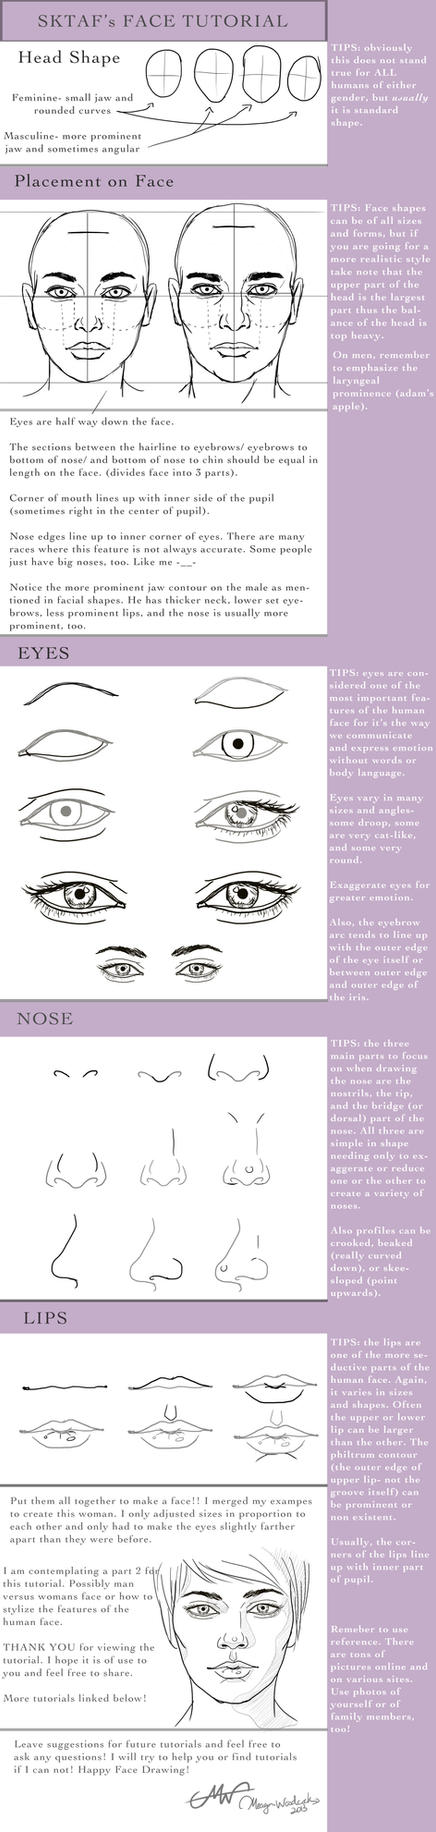 Face Tutorial by SKTAF